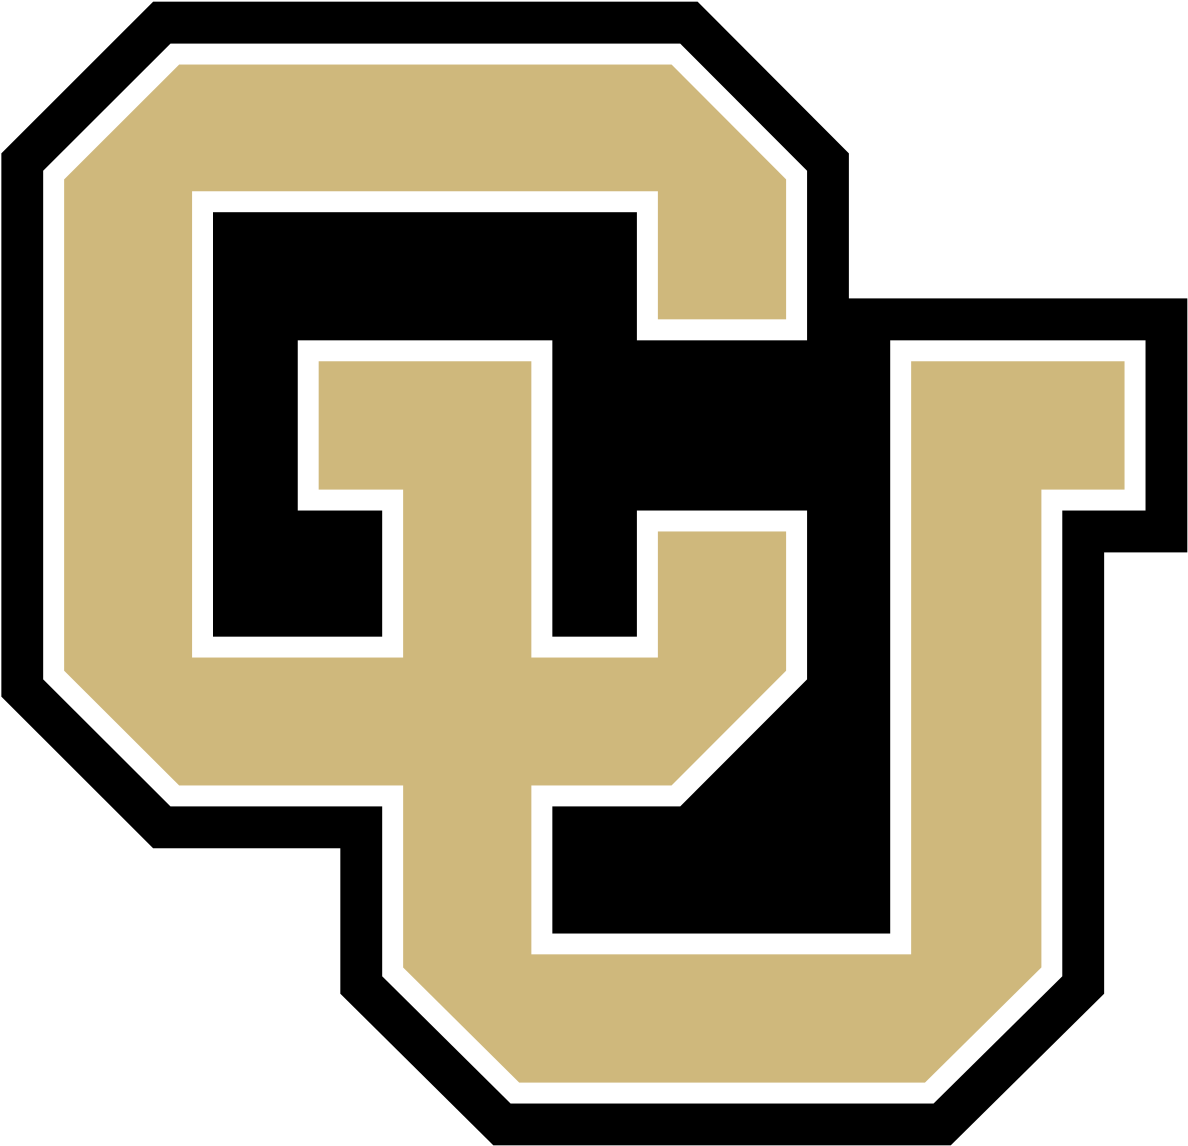 University Of Colorado Logo Clipart Full Size Clipart 232557 Pinclipart